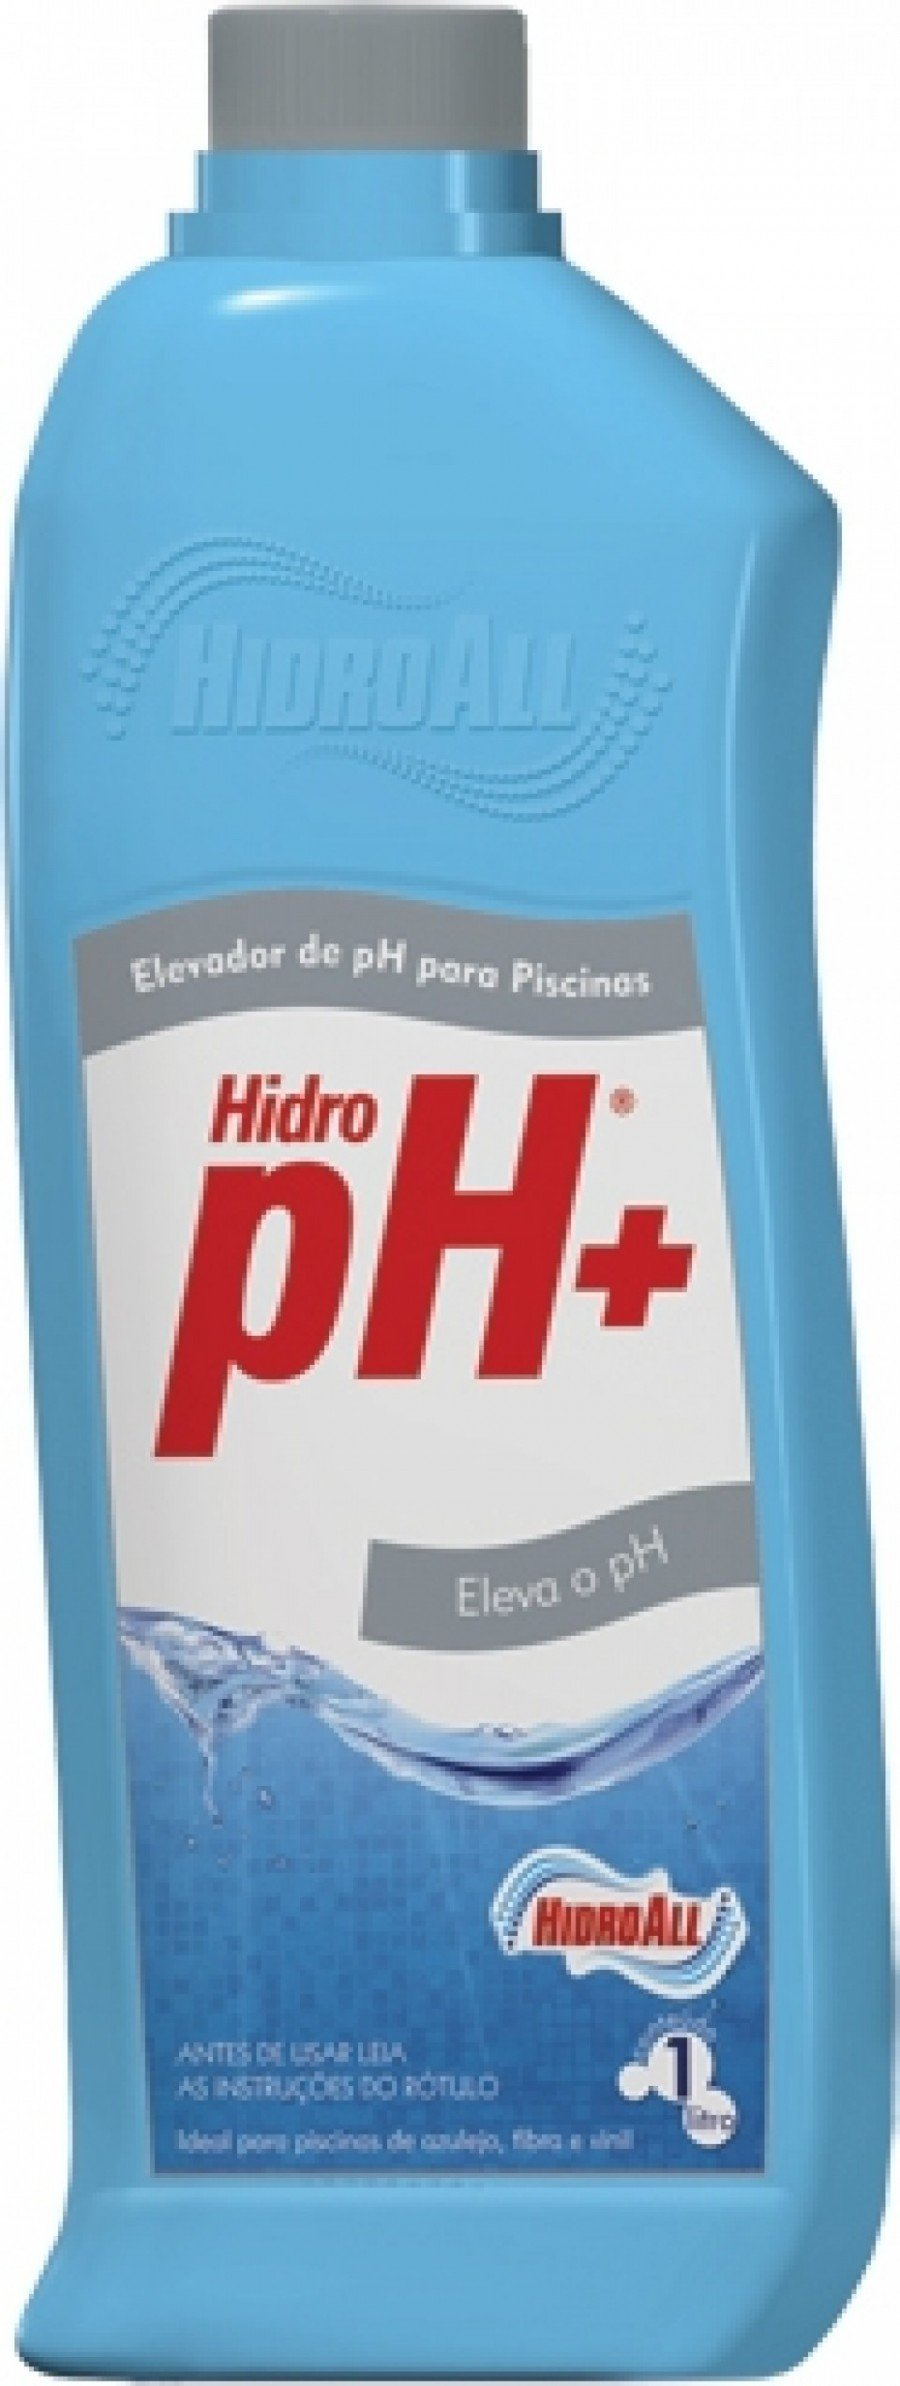 Ph Piscinas Elevador De Ph Liquido Para Piscinas Hidrosan Ph 1l